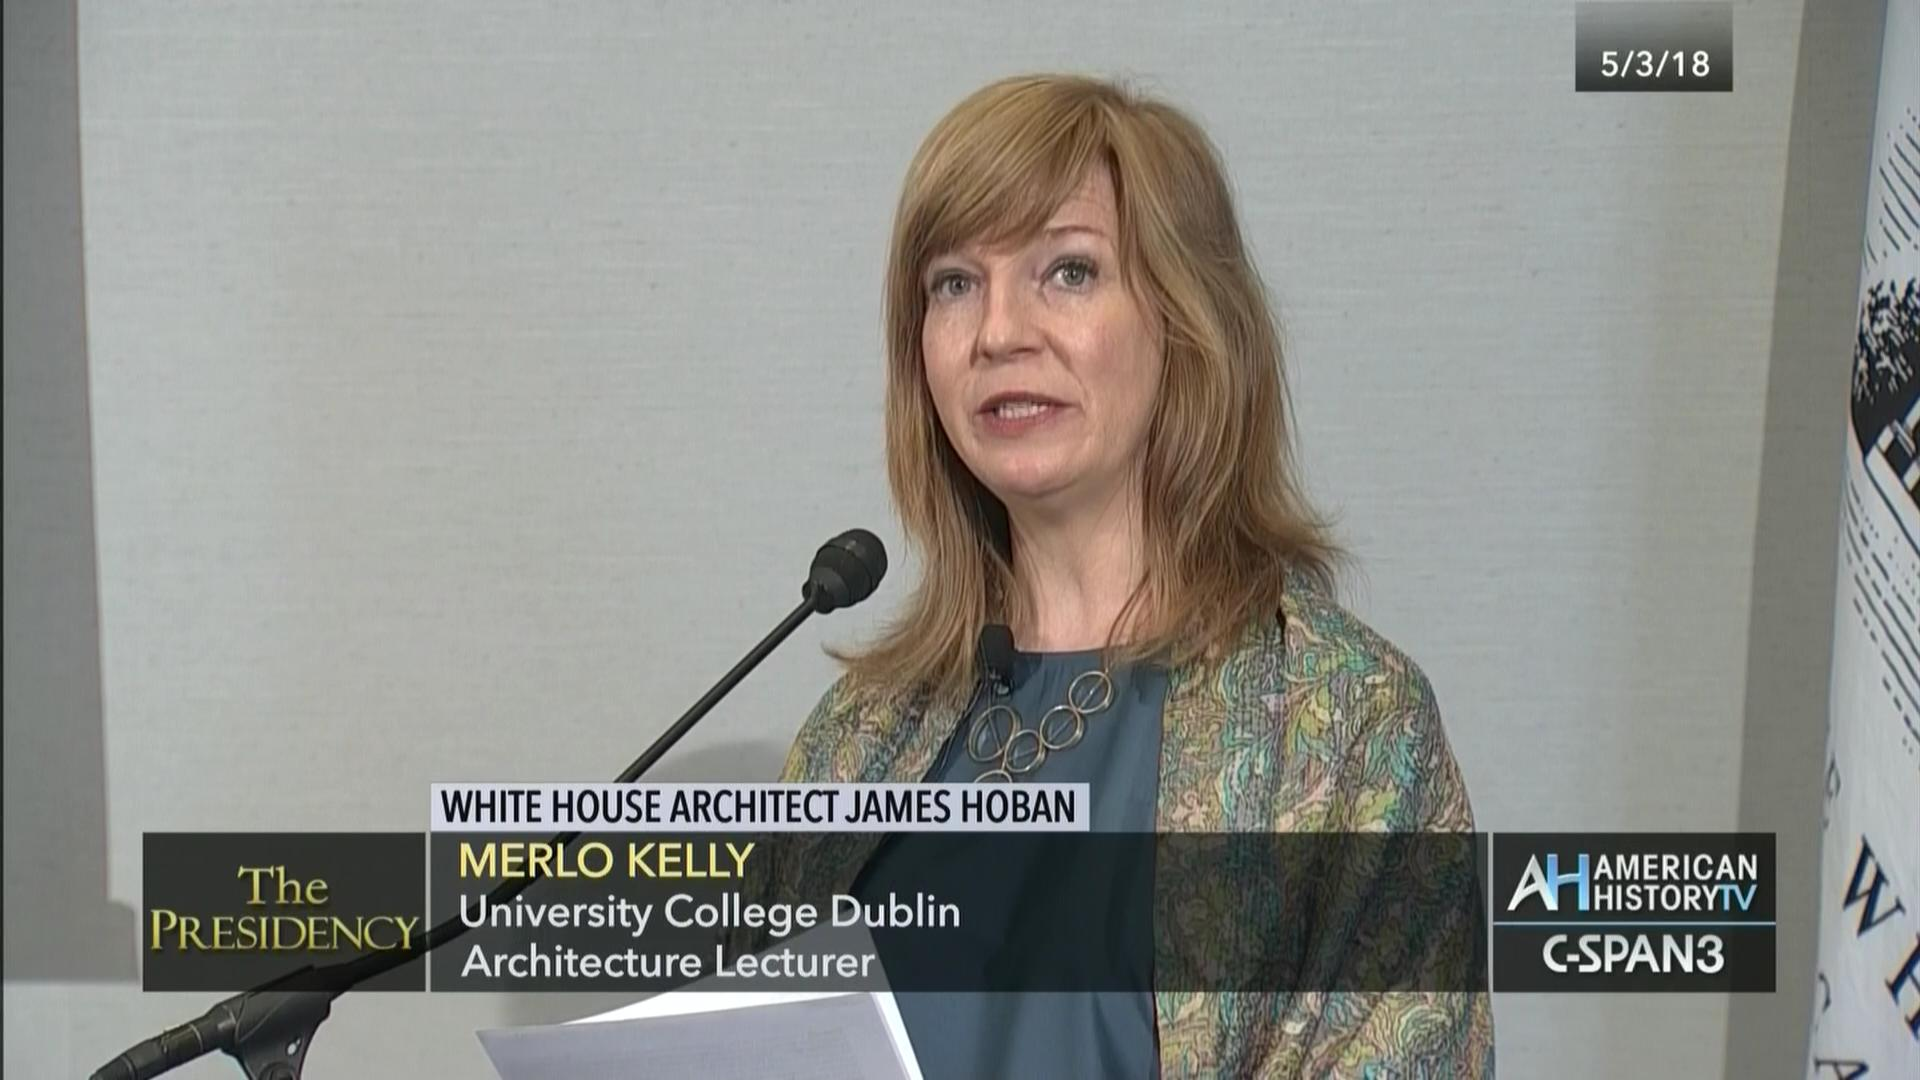 White House Architect James Hoban